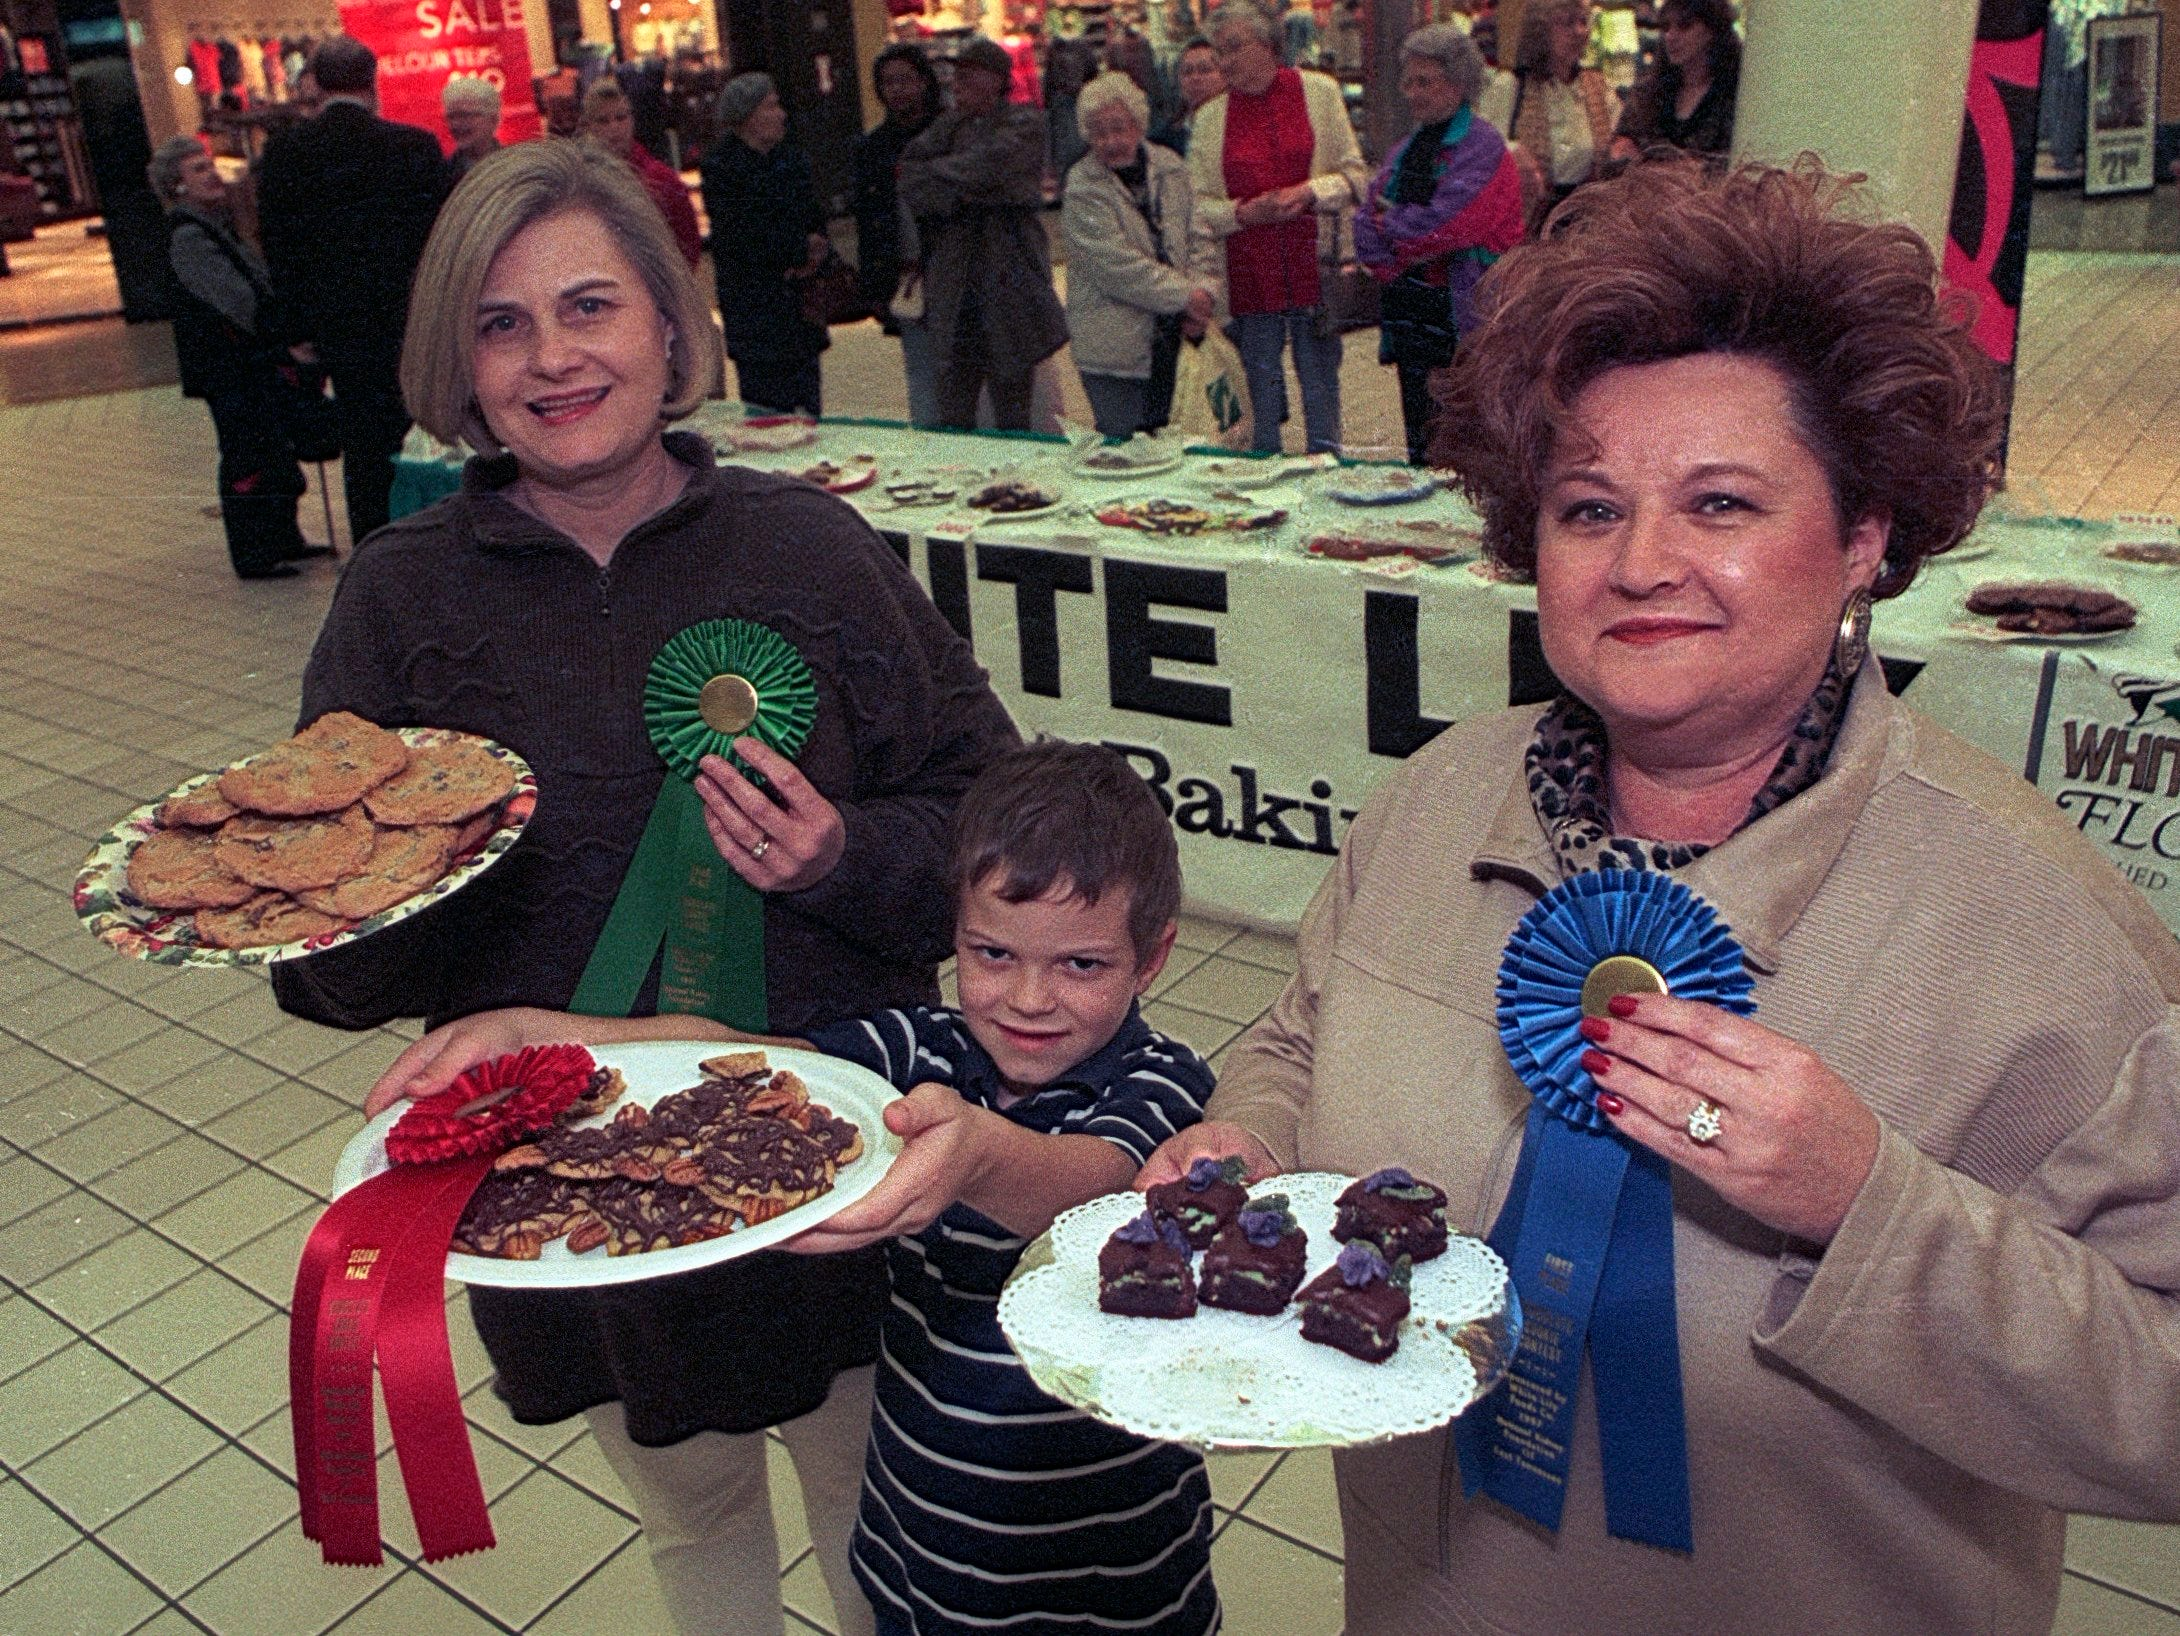 Top cookie contest bakers Teresa Lee with chocolate chippers, left, Peter Shankles with chocolately-pecan cartwheels, and Barbara Tenney with gourmet mint brownies show off their winning entries during the Chocolate Fest on Jan. 9, 1997, at East Towne Mall. (News Sentinel Archive)